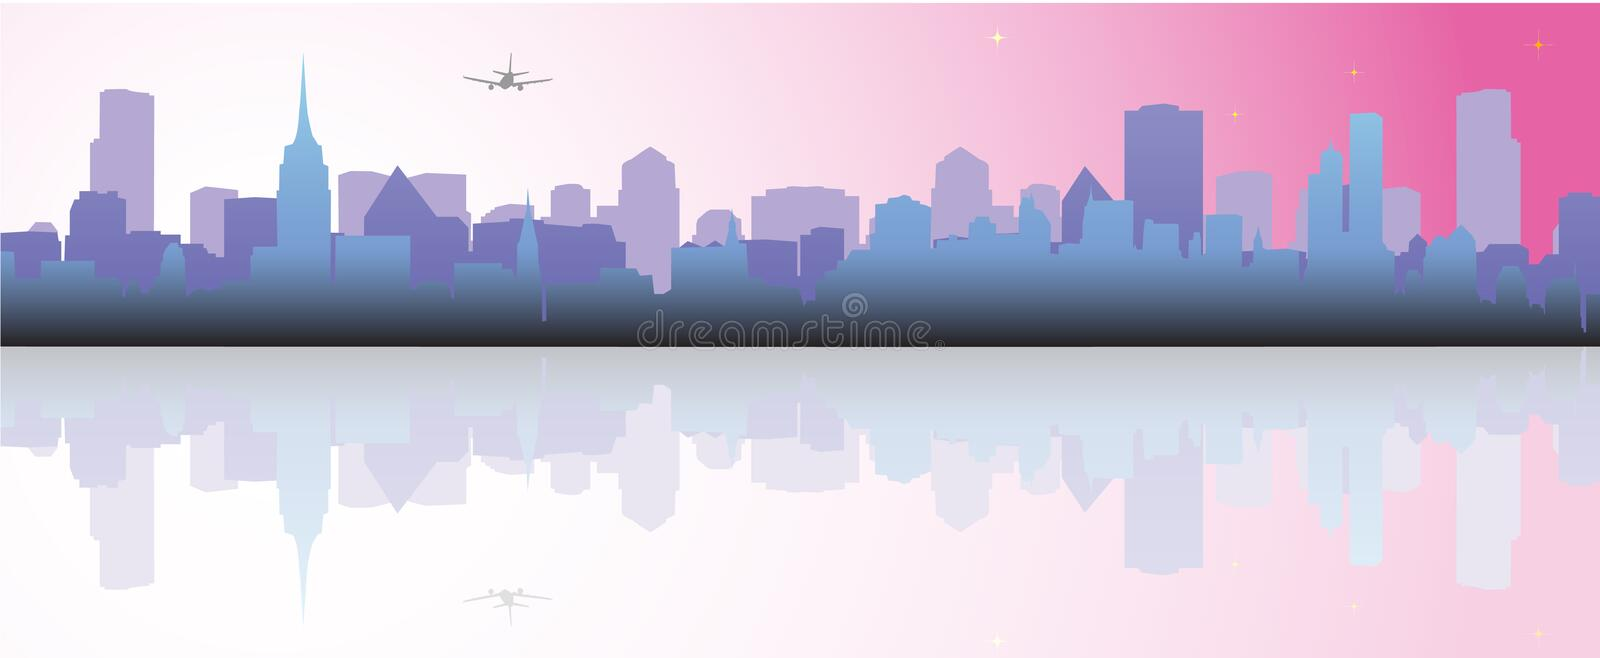 Cityscape. Vector illustration of buildings reflection stock illustration